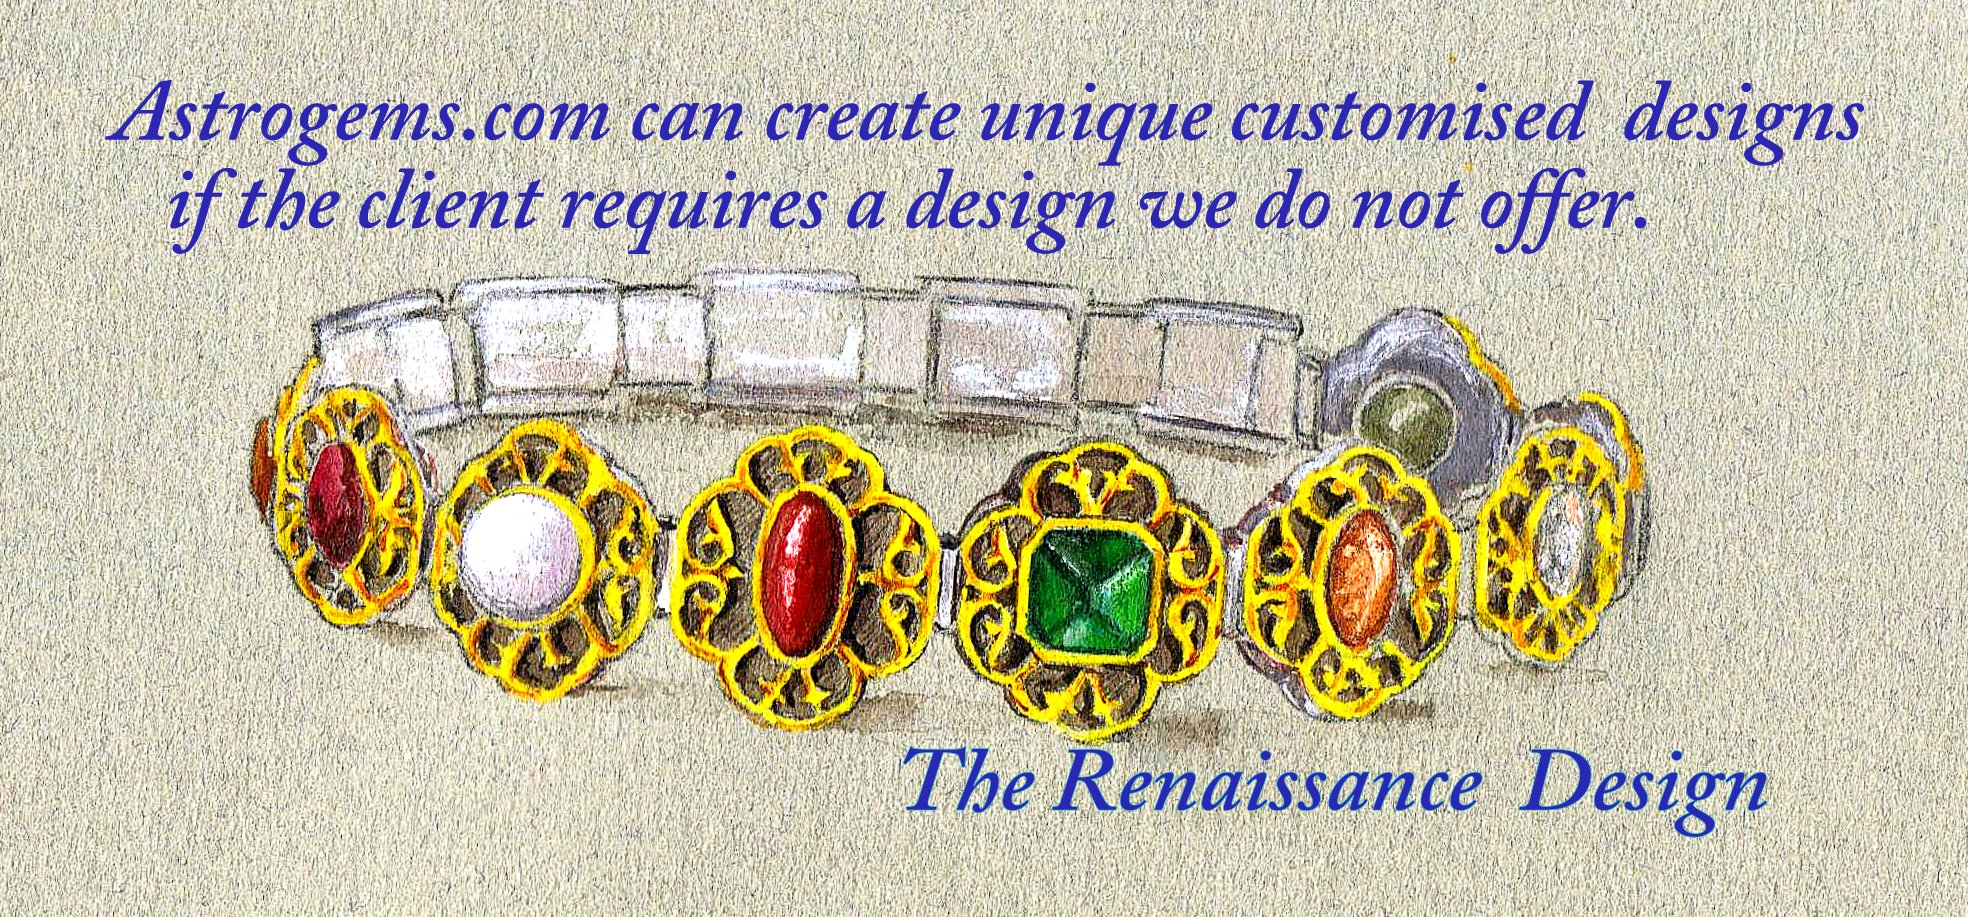 custom vedic astrological bangles and bracelets by Astrogems.com